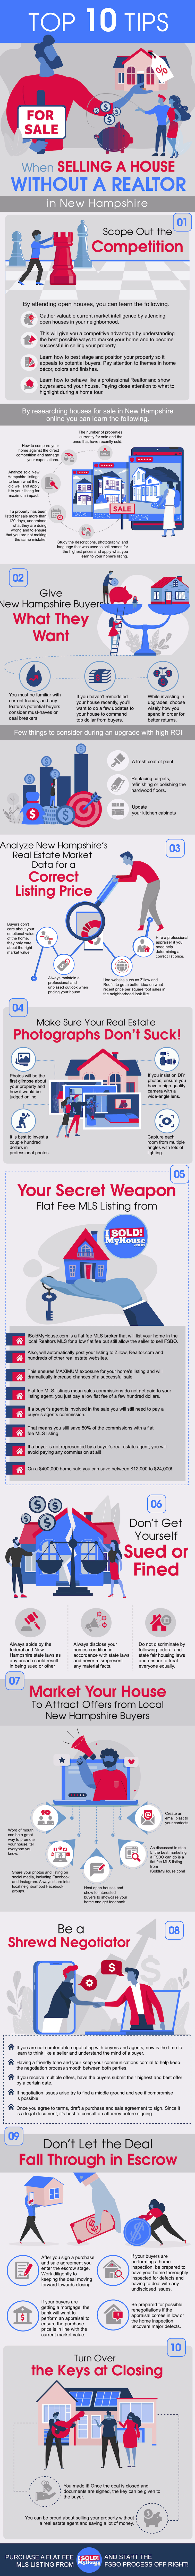 infographic of the 10 steps to sell a house in new hampshire without an agent